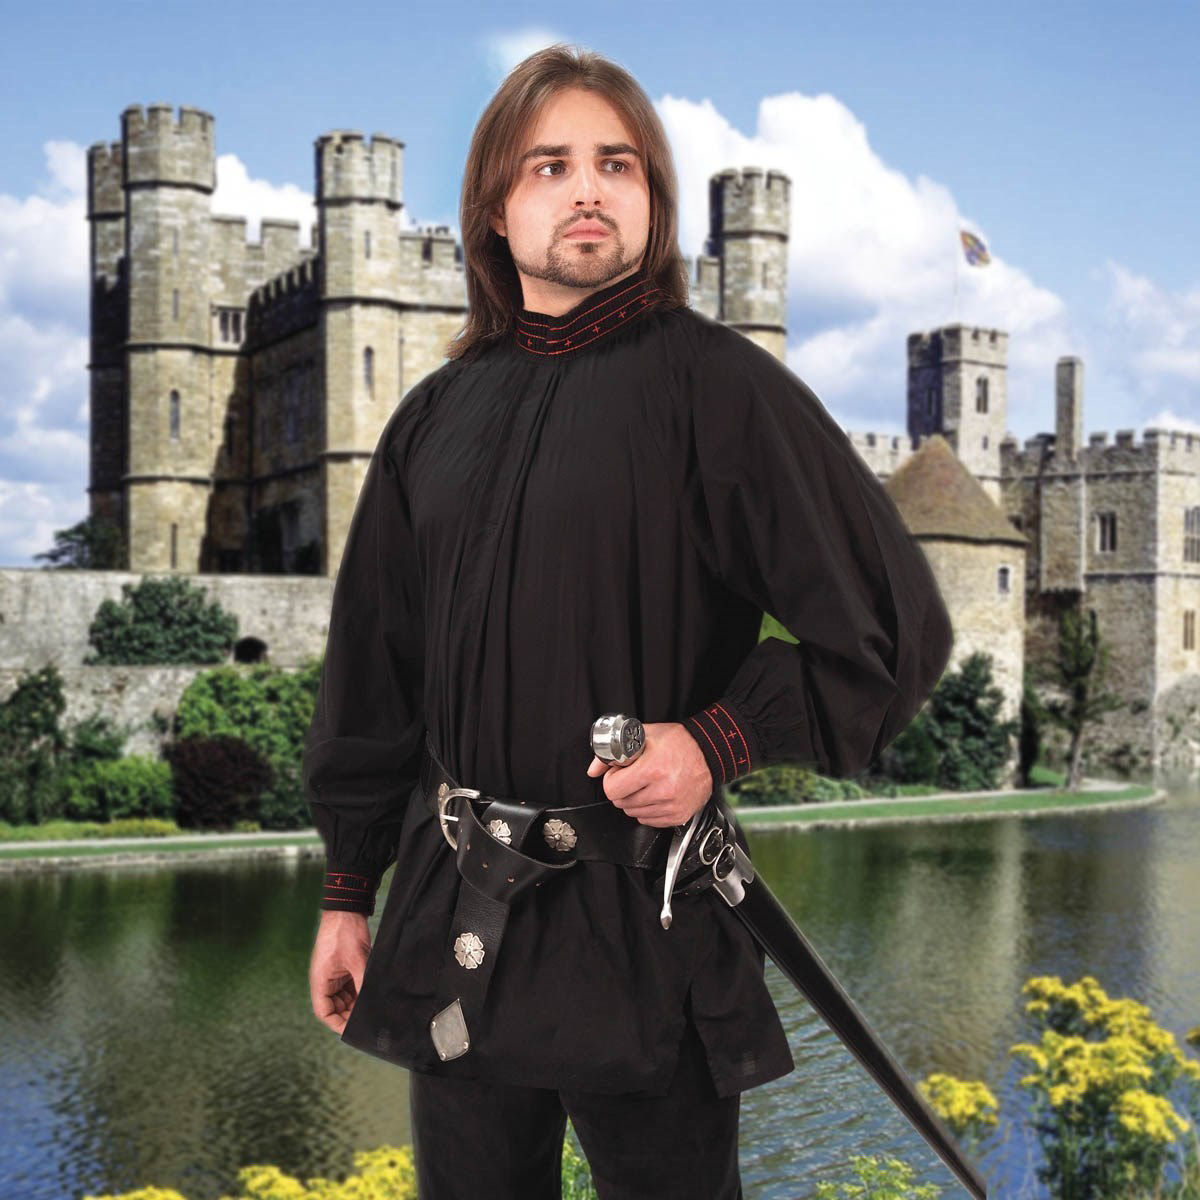 cotton Tudor Renaissance shirt is black with red trim and crosses, can be worn with collar open or closed